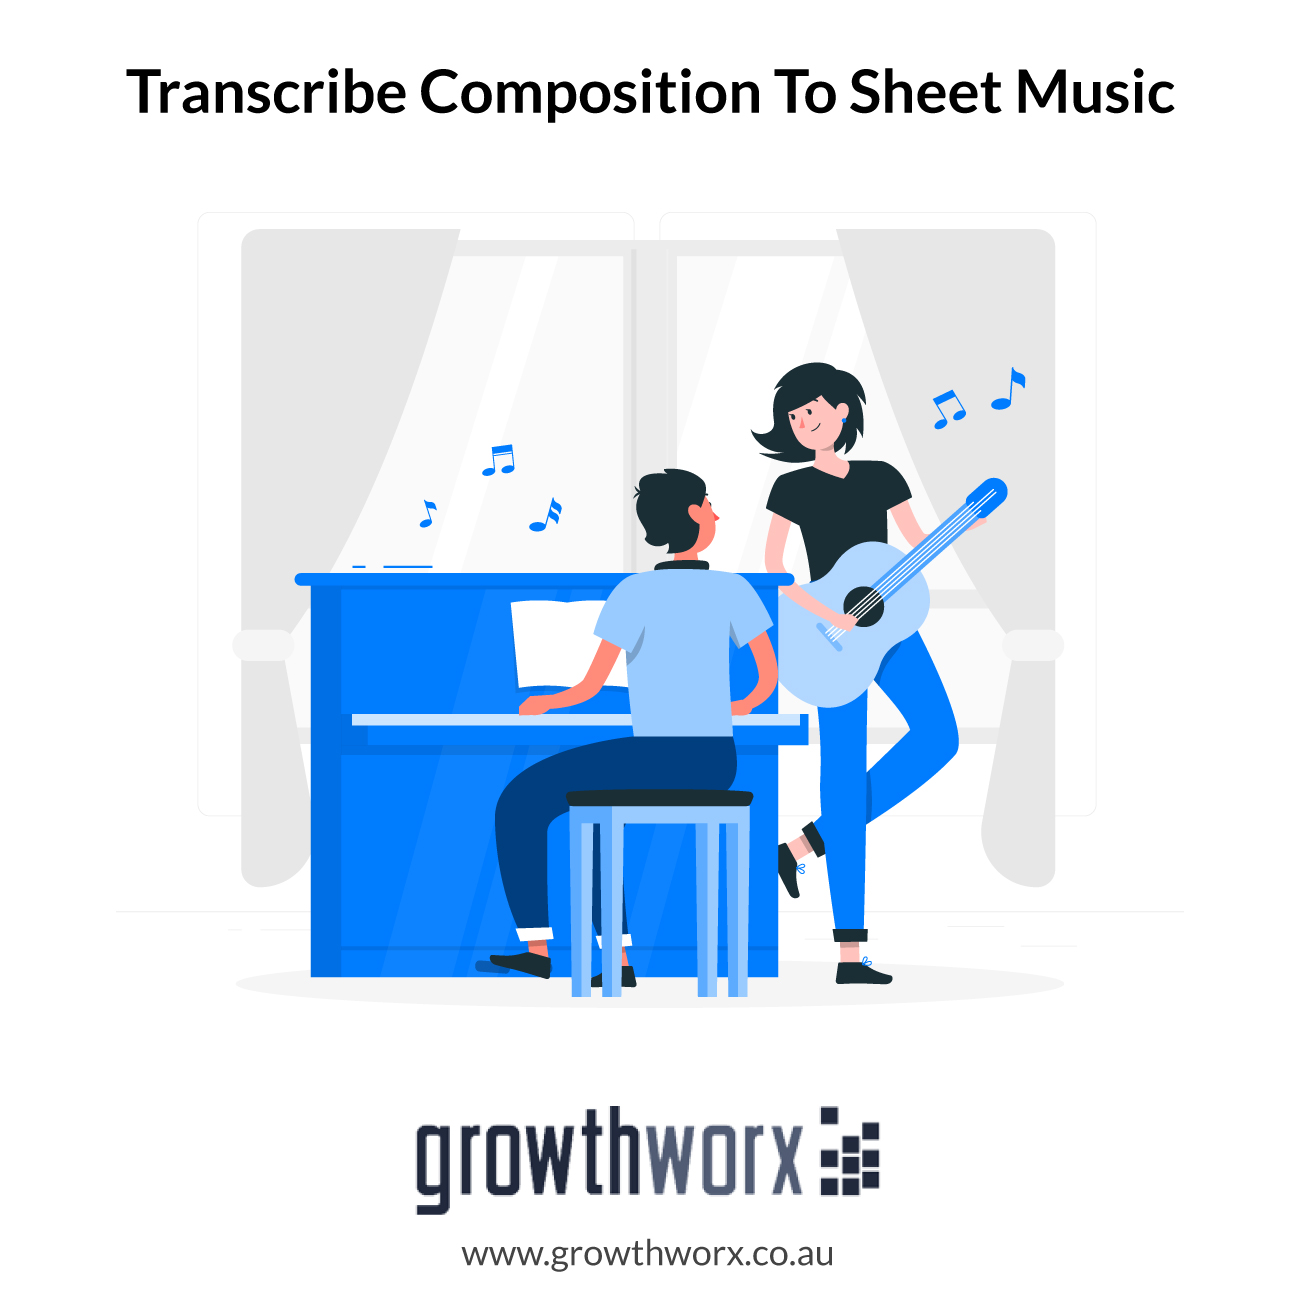 I will transcribe composition to sheet music for piano 1